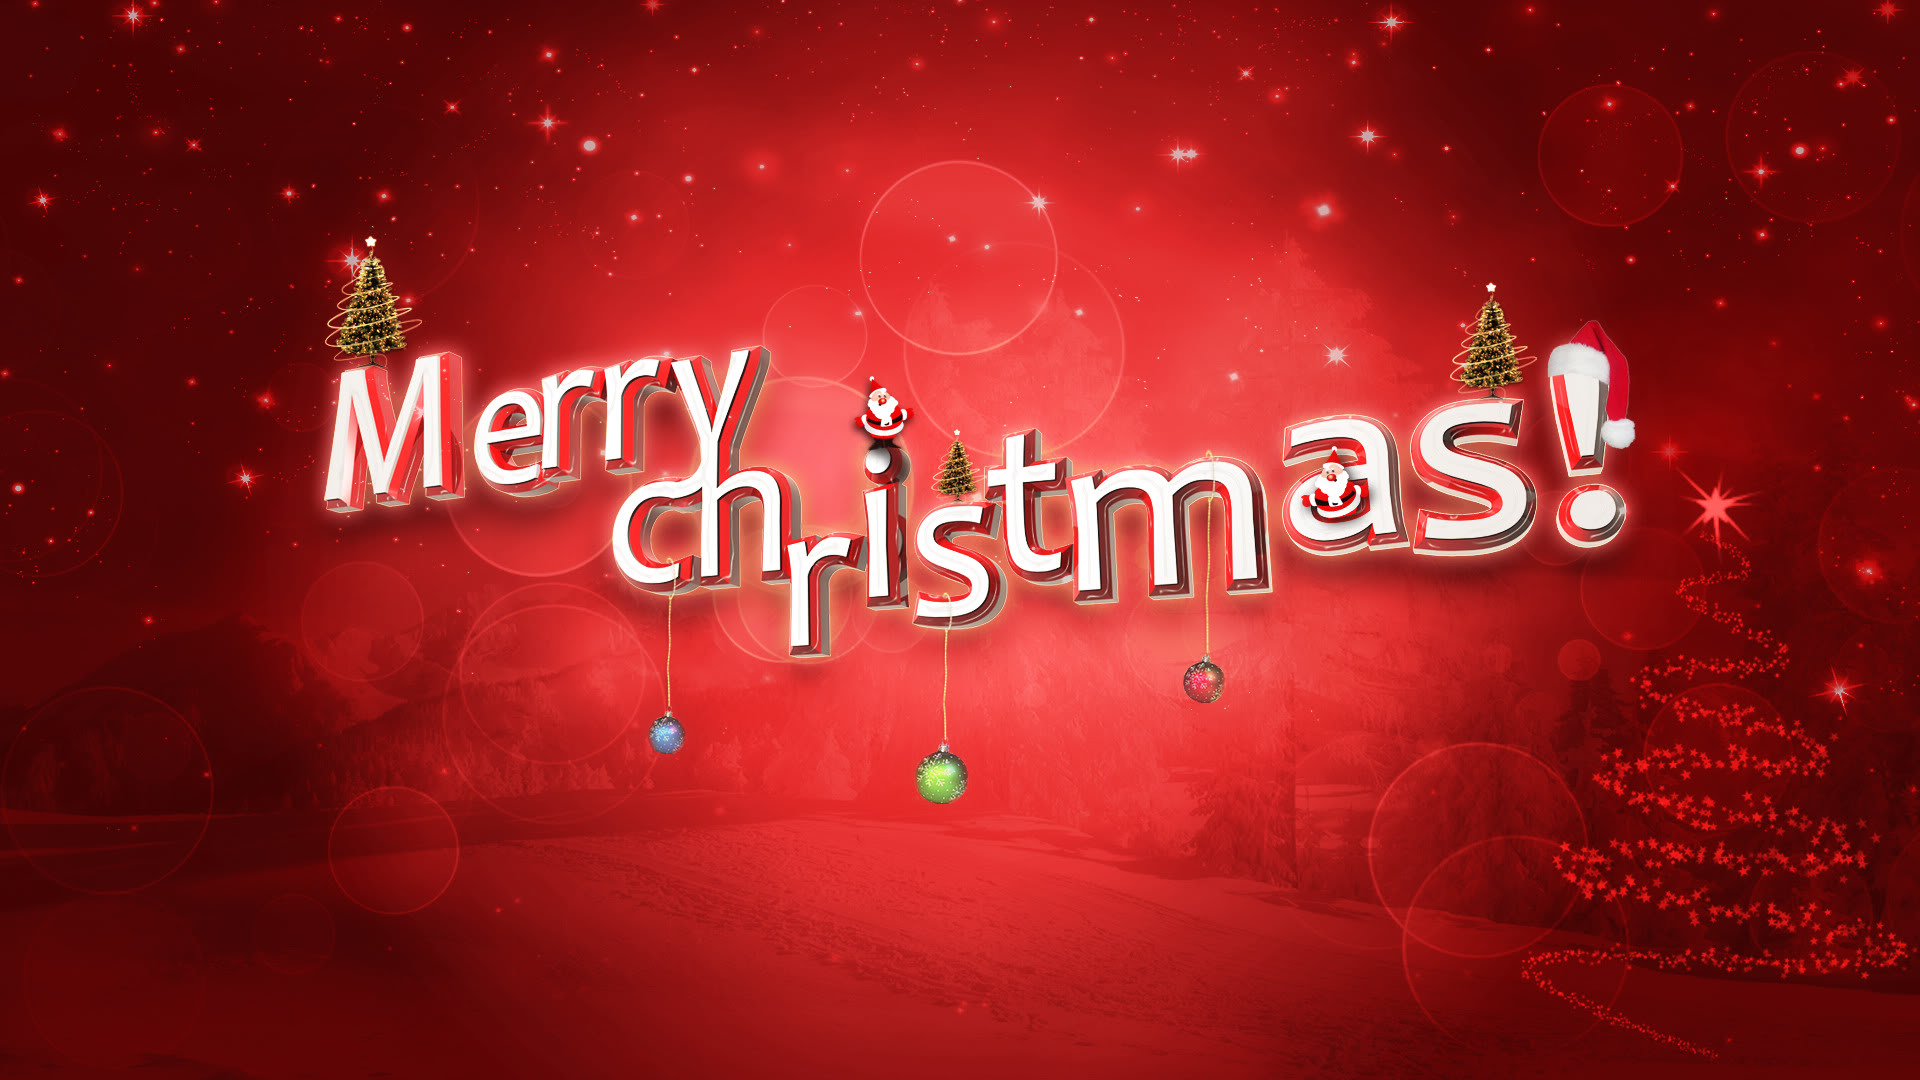 Advance Merry Christmas 2016 Images Pictures Whatsapp dp 1920x1080